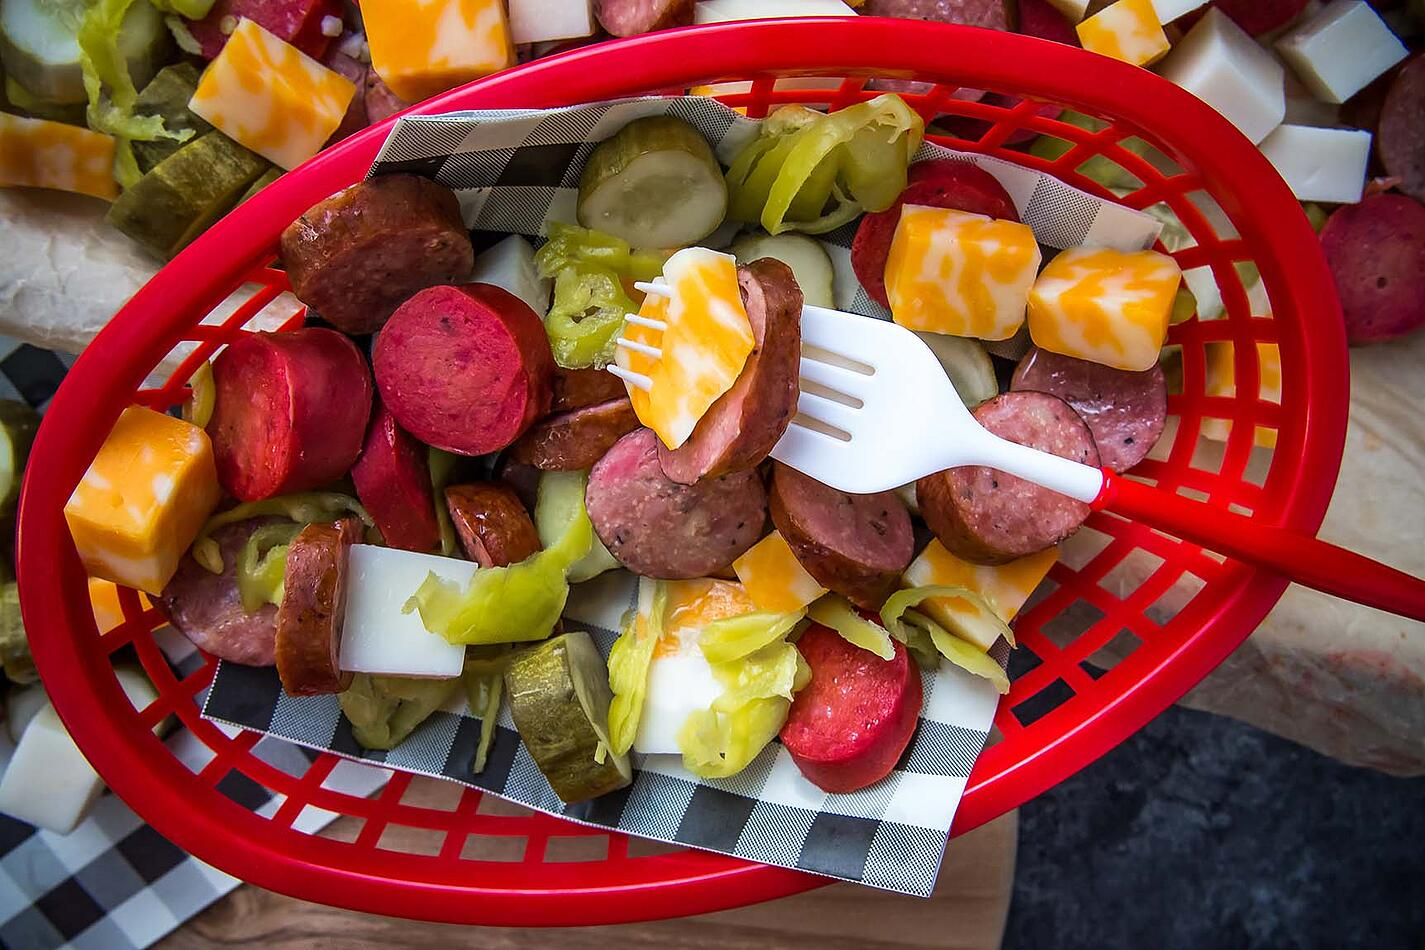 Sausage Cheese and Pickle Platter 3 (1 of 1)